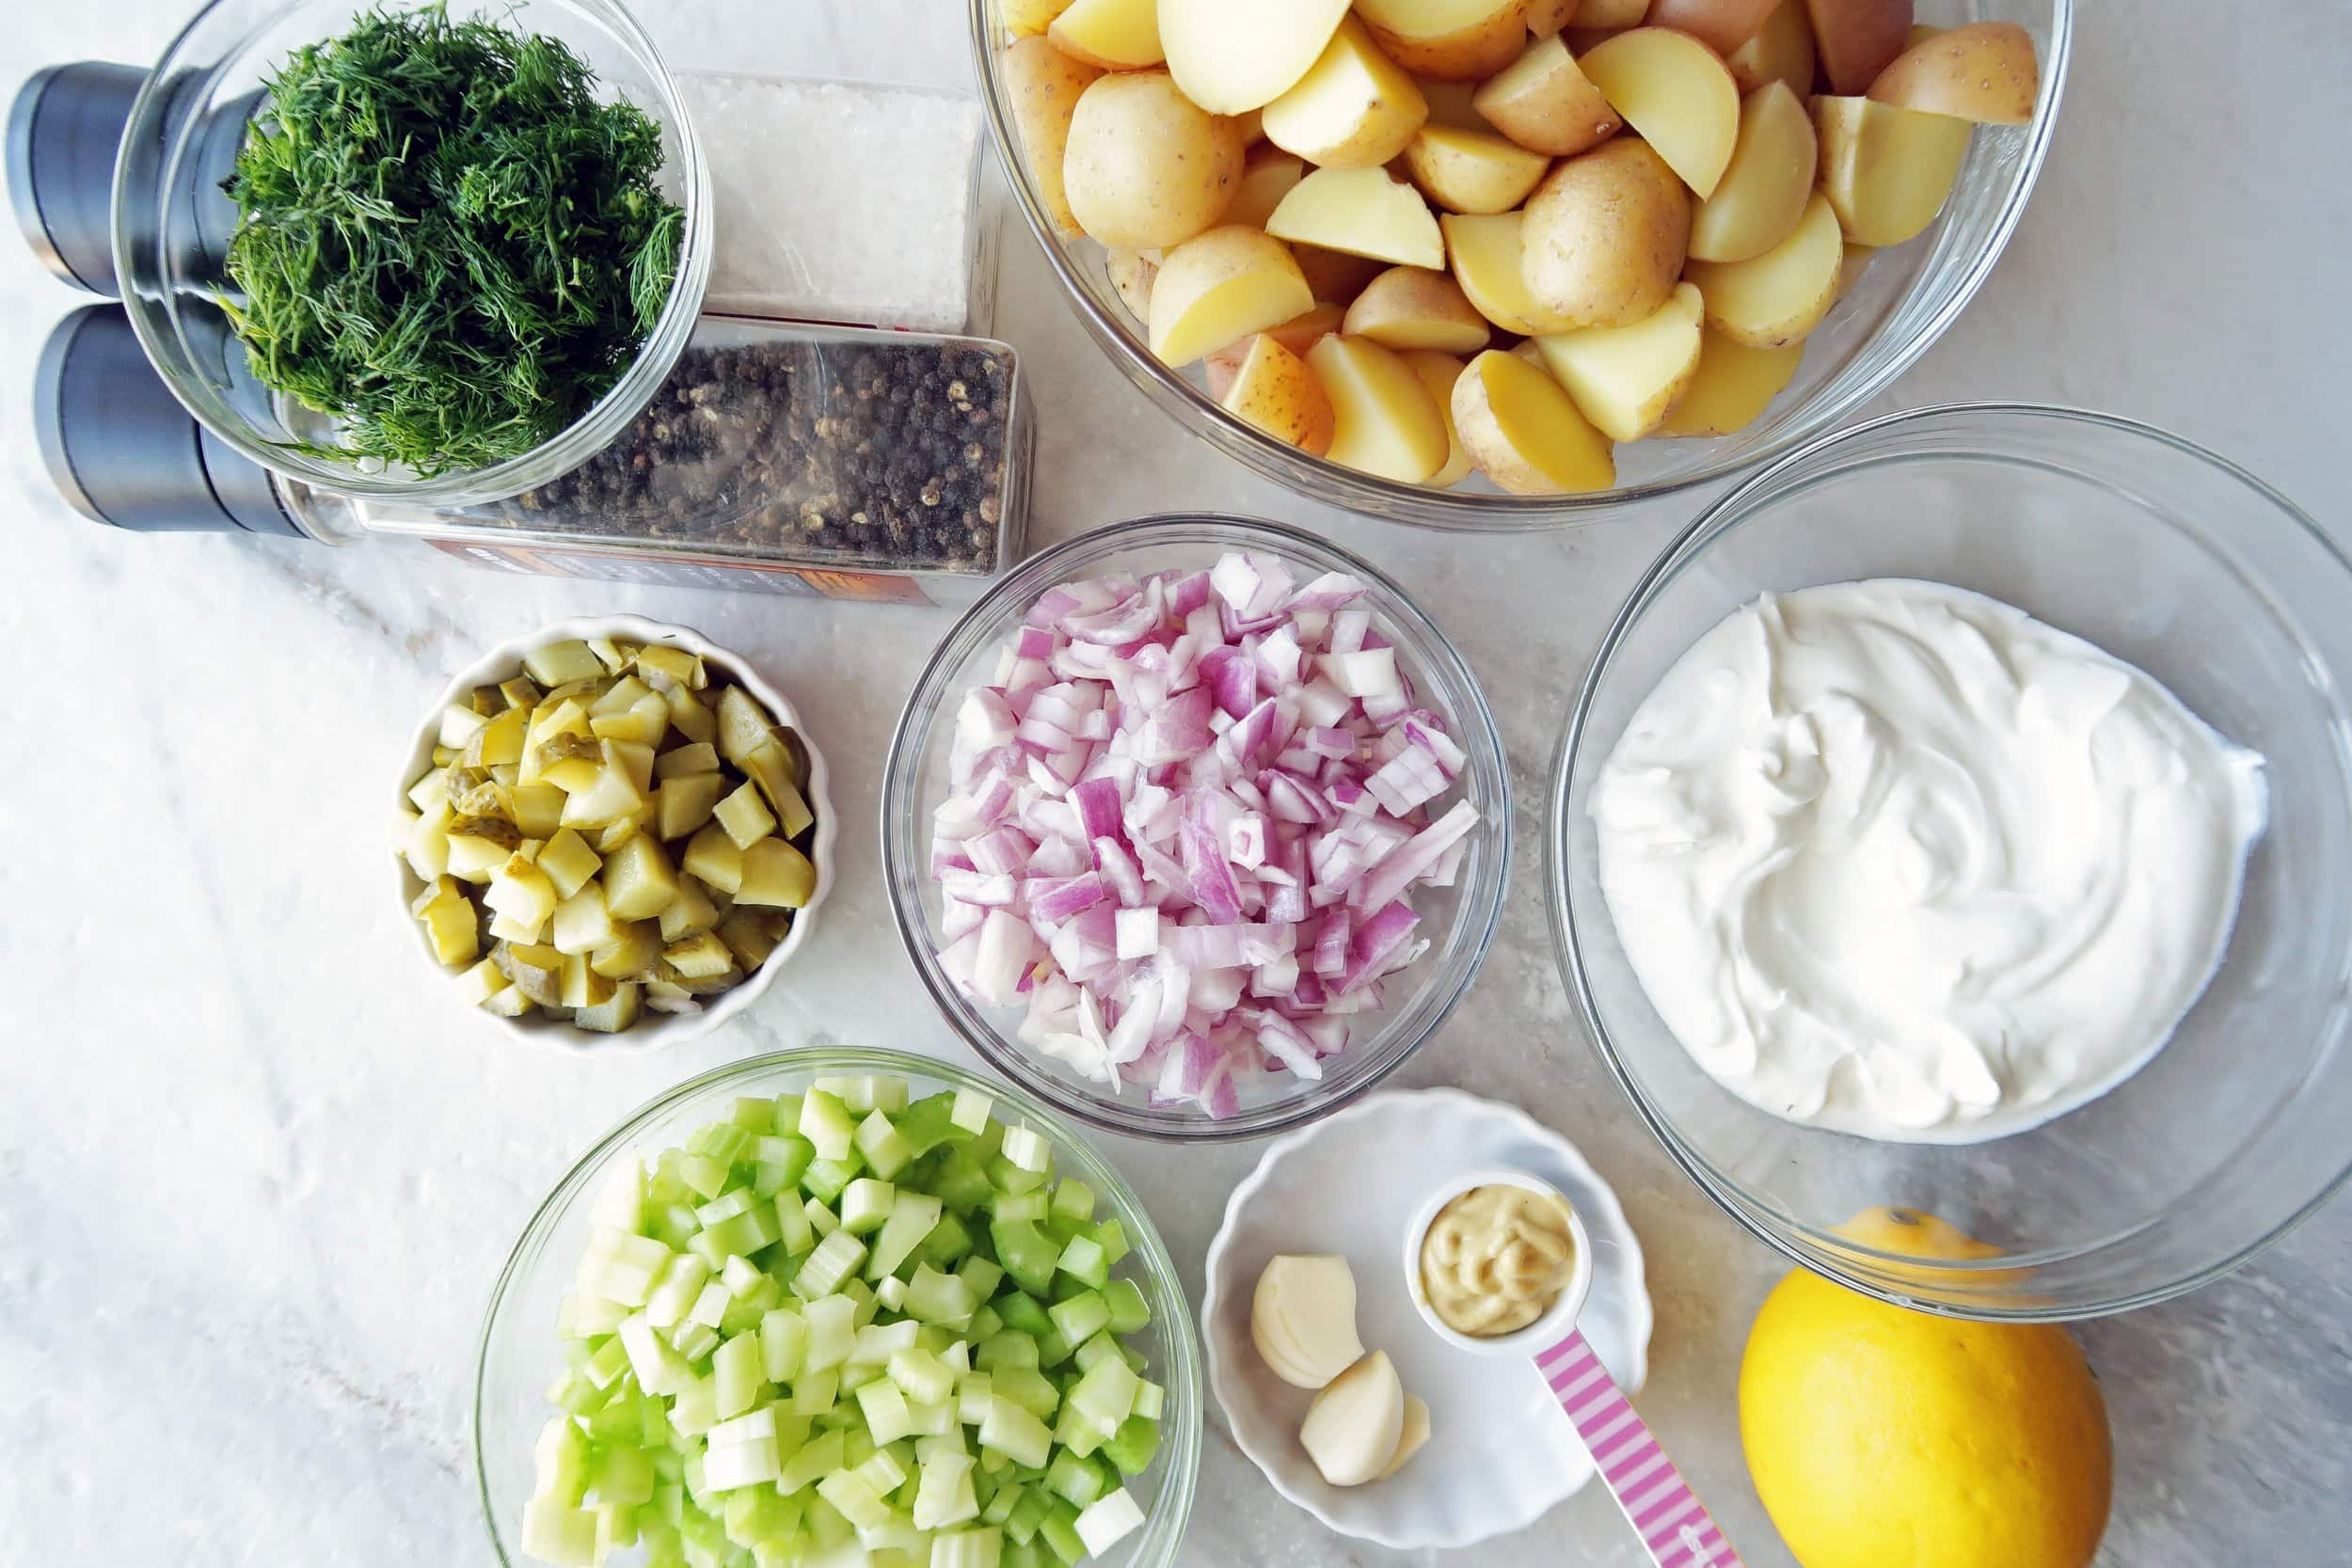 Separate bowls of potatoes, dill, onions,celery, red onions, and Greek yogurt.